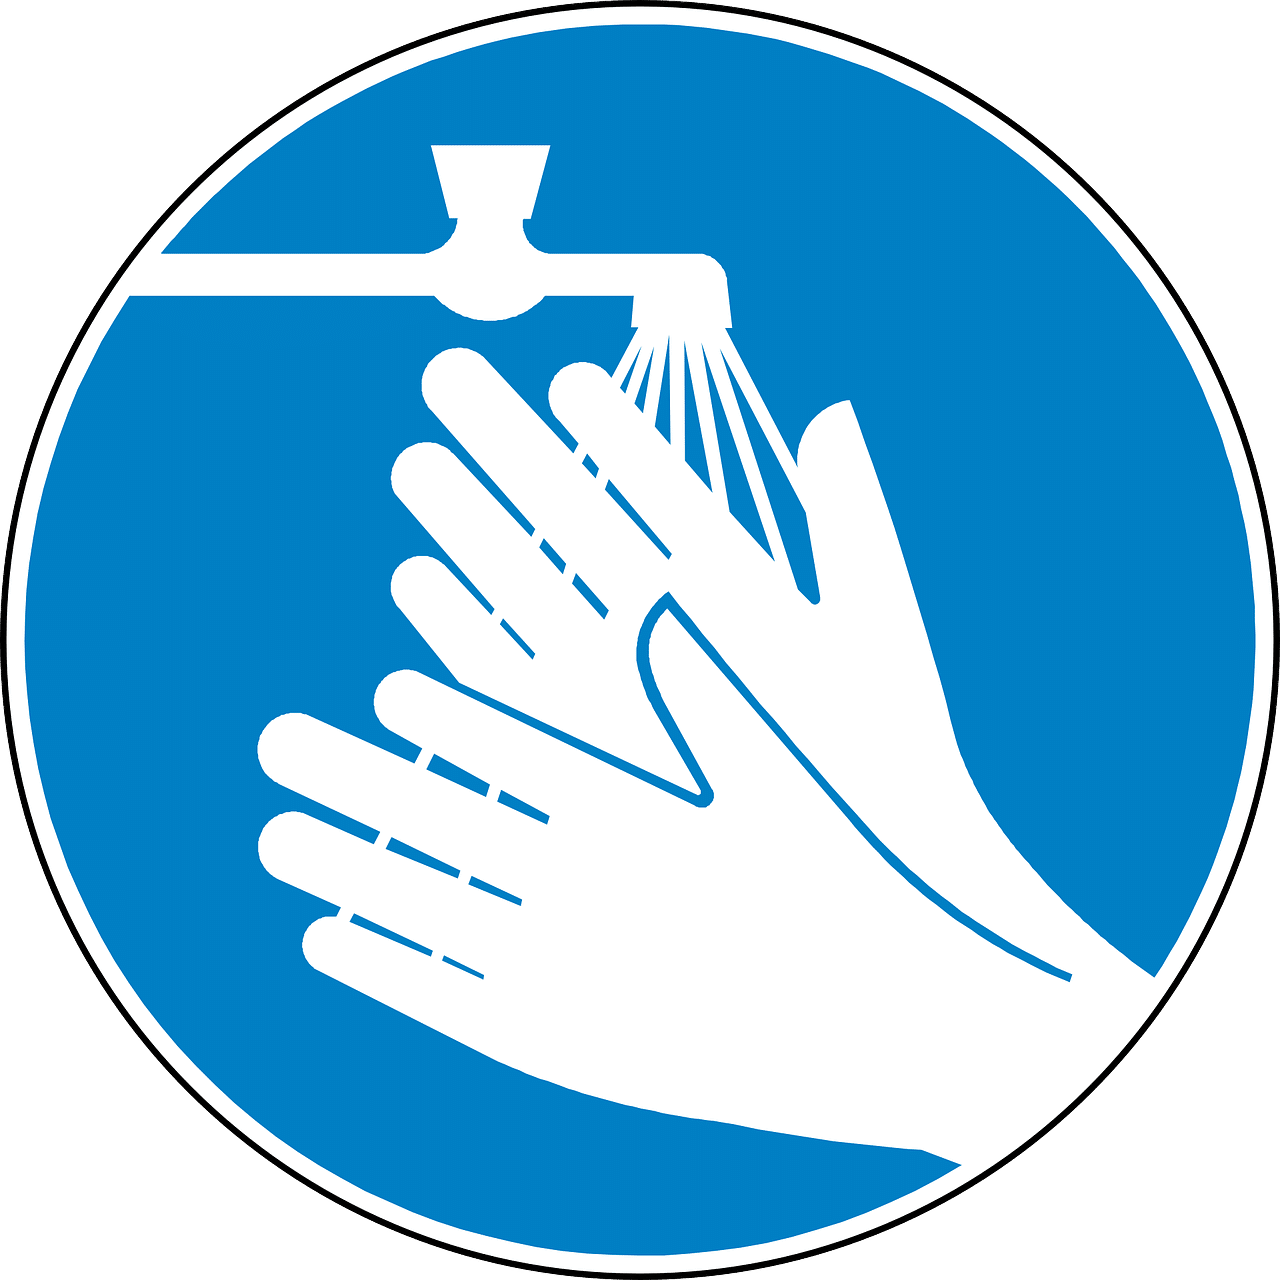 Image of handwashing